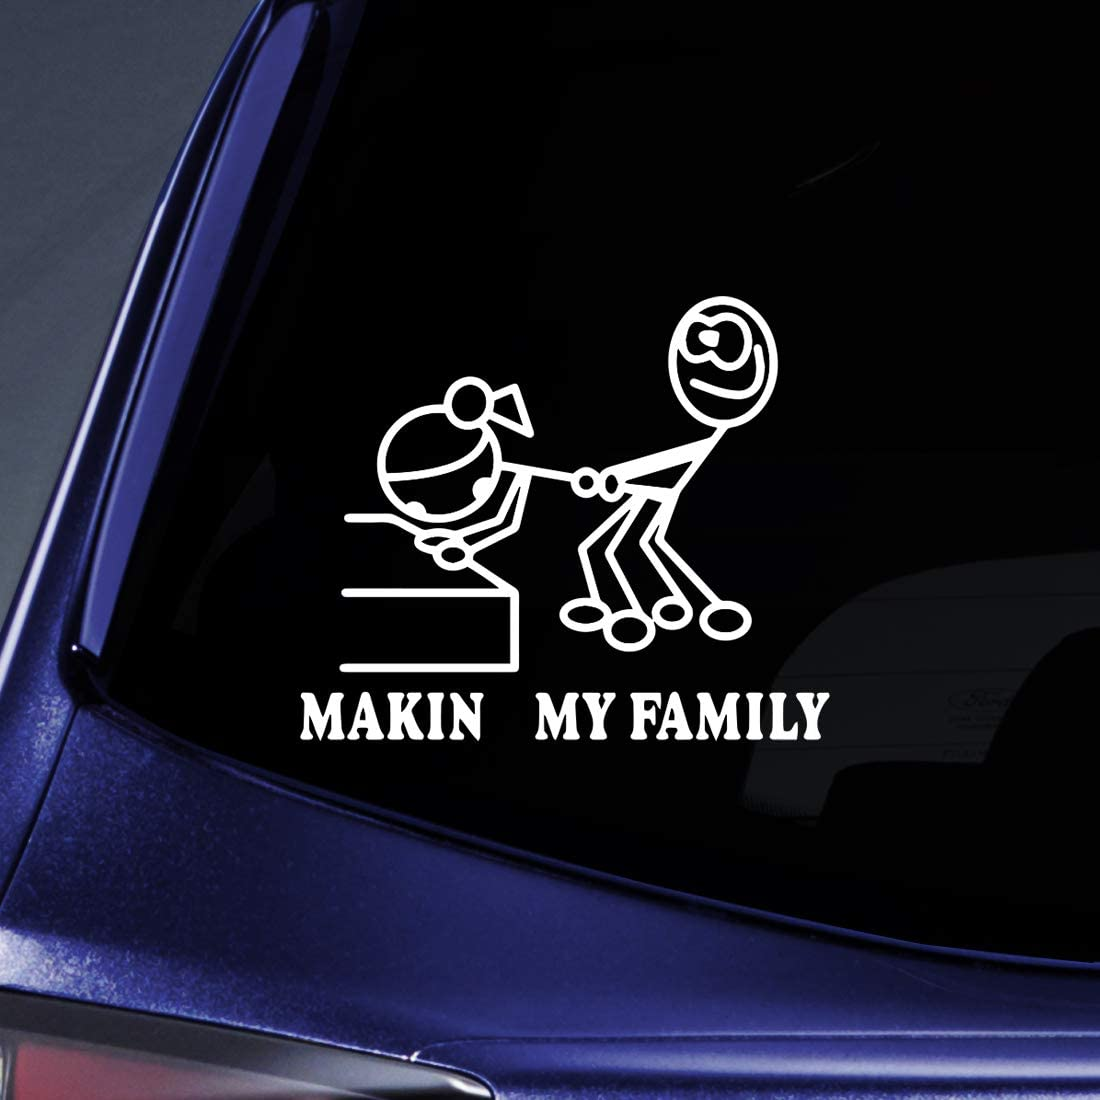 "Bargain Max Decals - Making my Family Parody Funny Sticker Decal Notebook Car Laptop 6"" (White)"